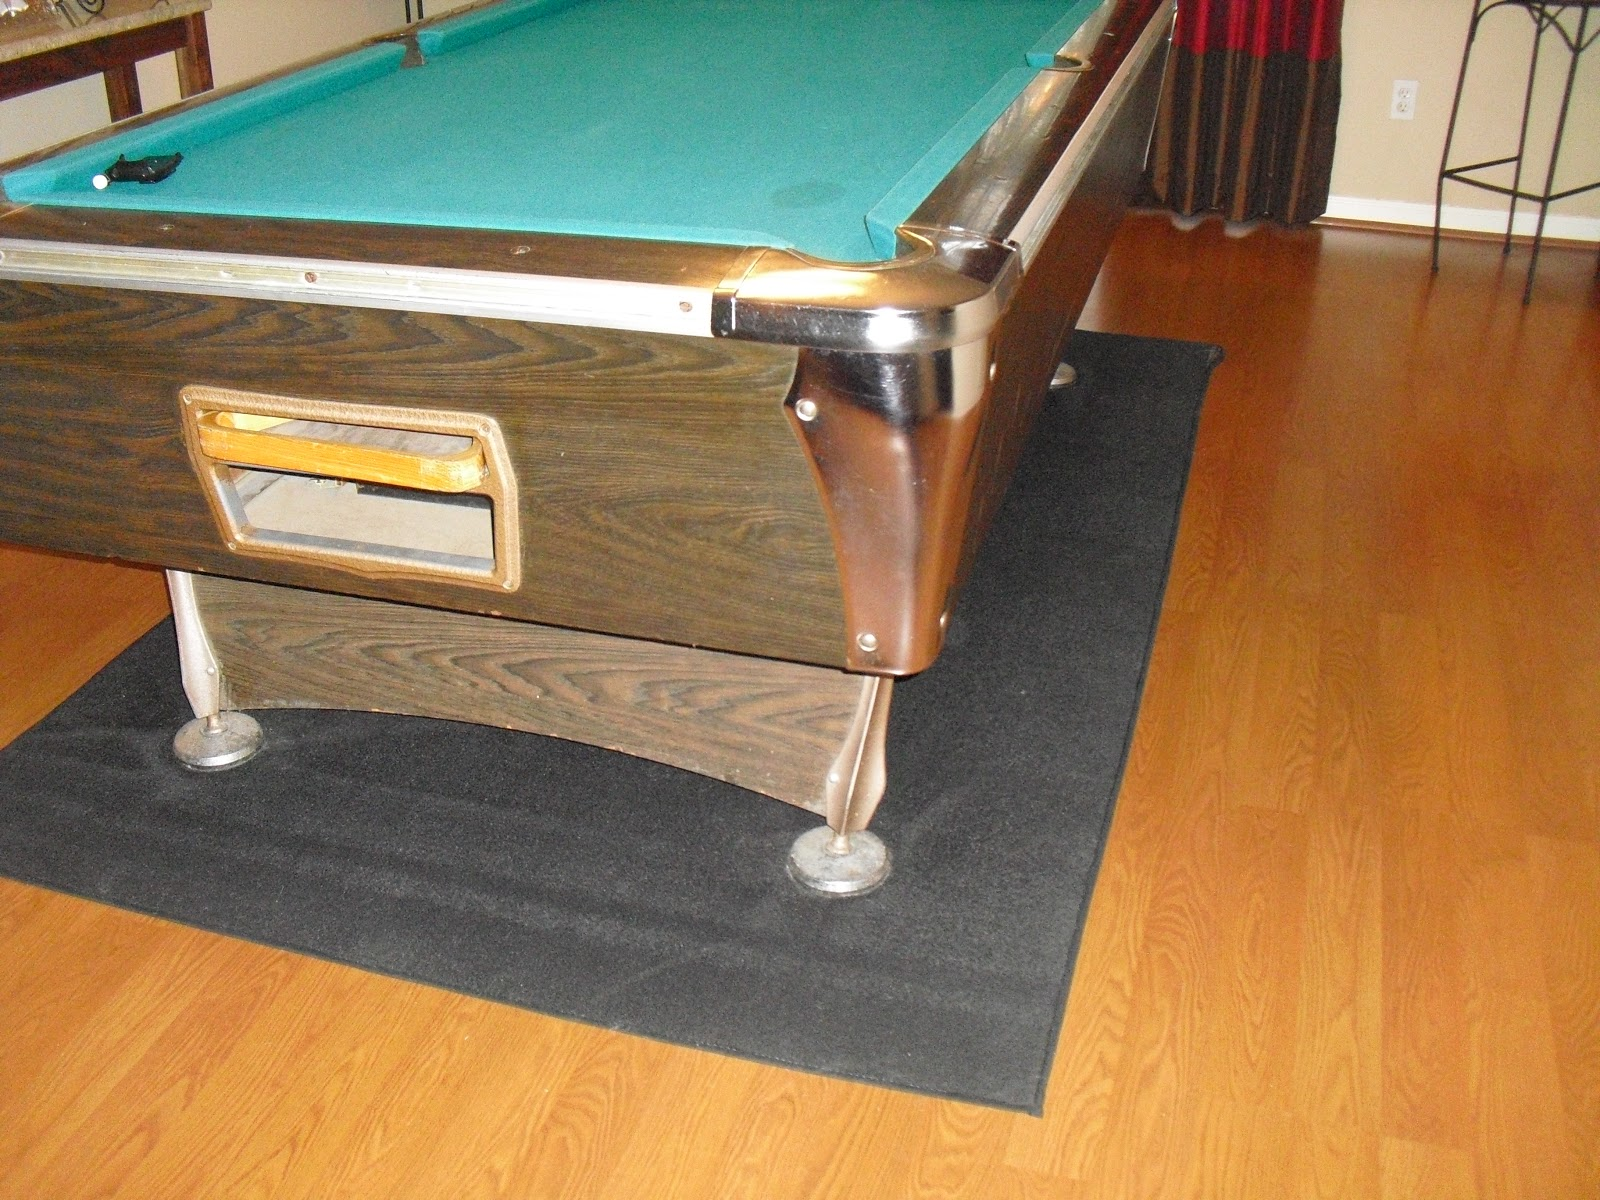 The Boswells Out With The Old - How to take apart a pool table